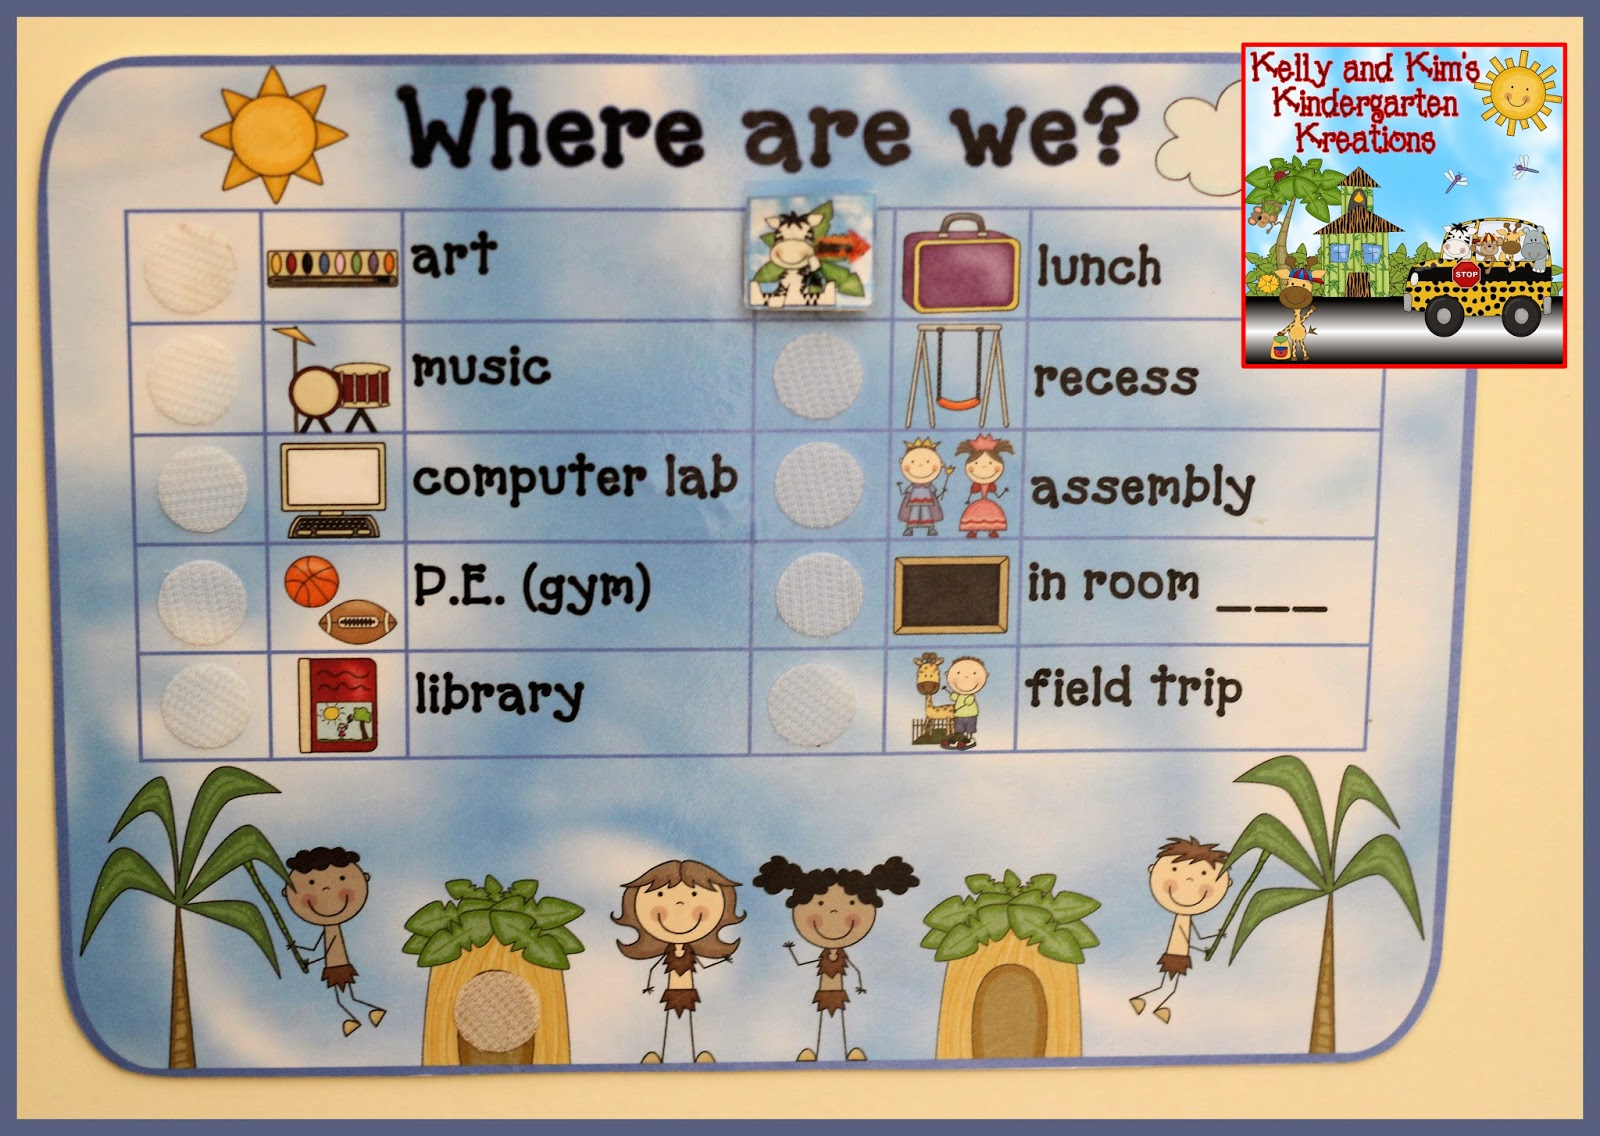 Kelly And Kim S Kindergarten Kreations We Re Wild About Our Jungle Themed Classroom Decor Pack